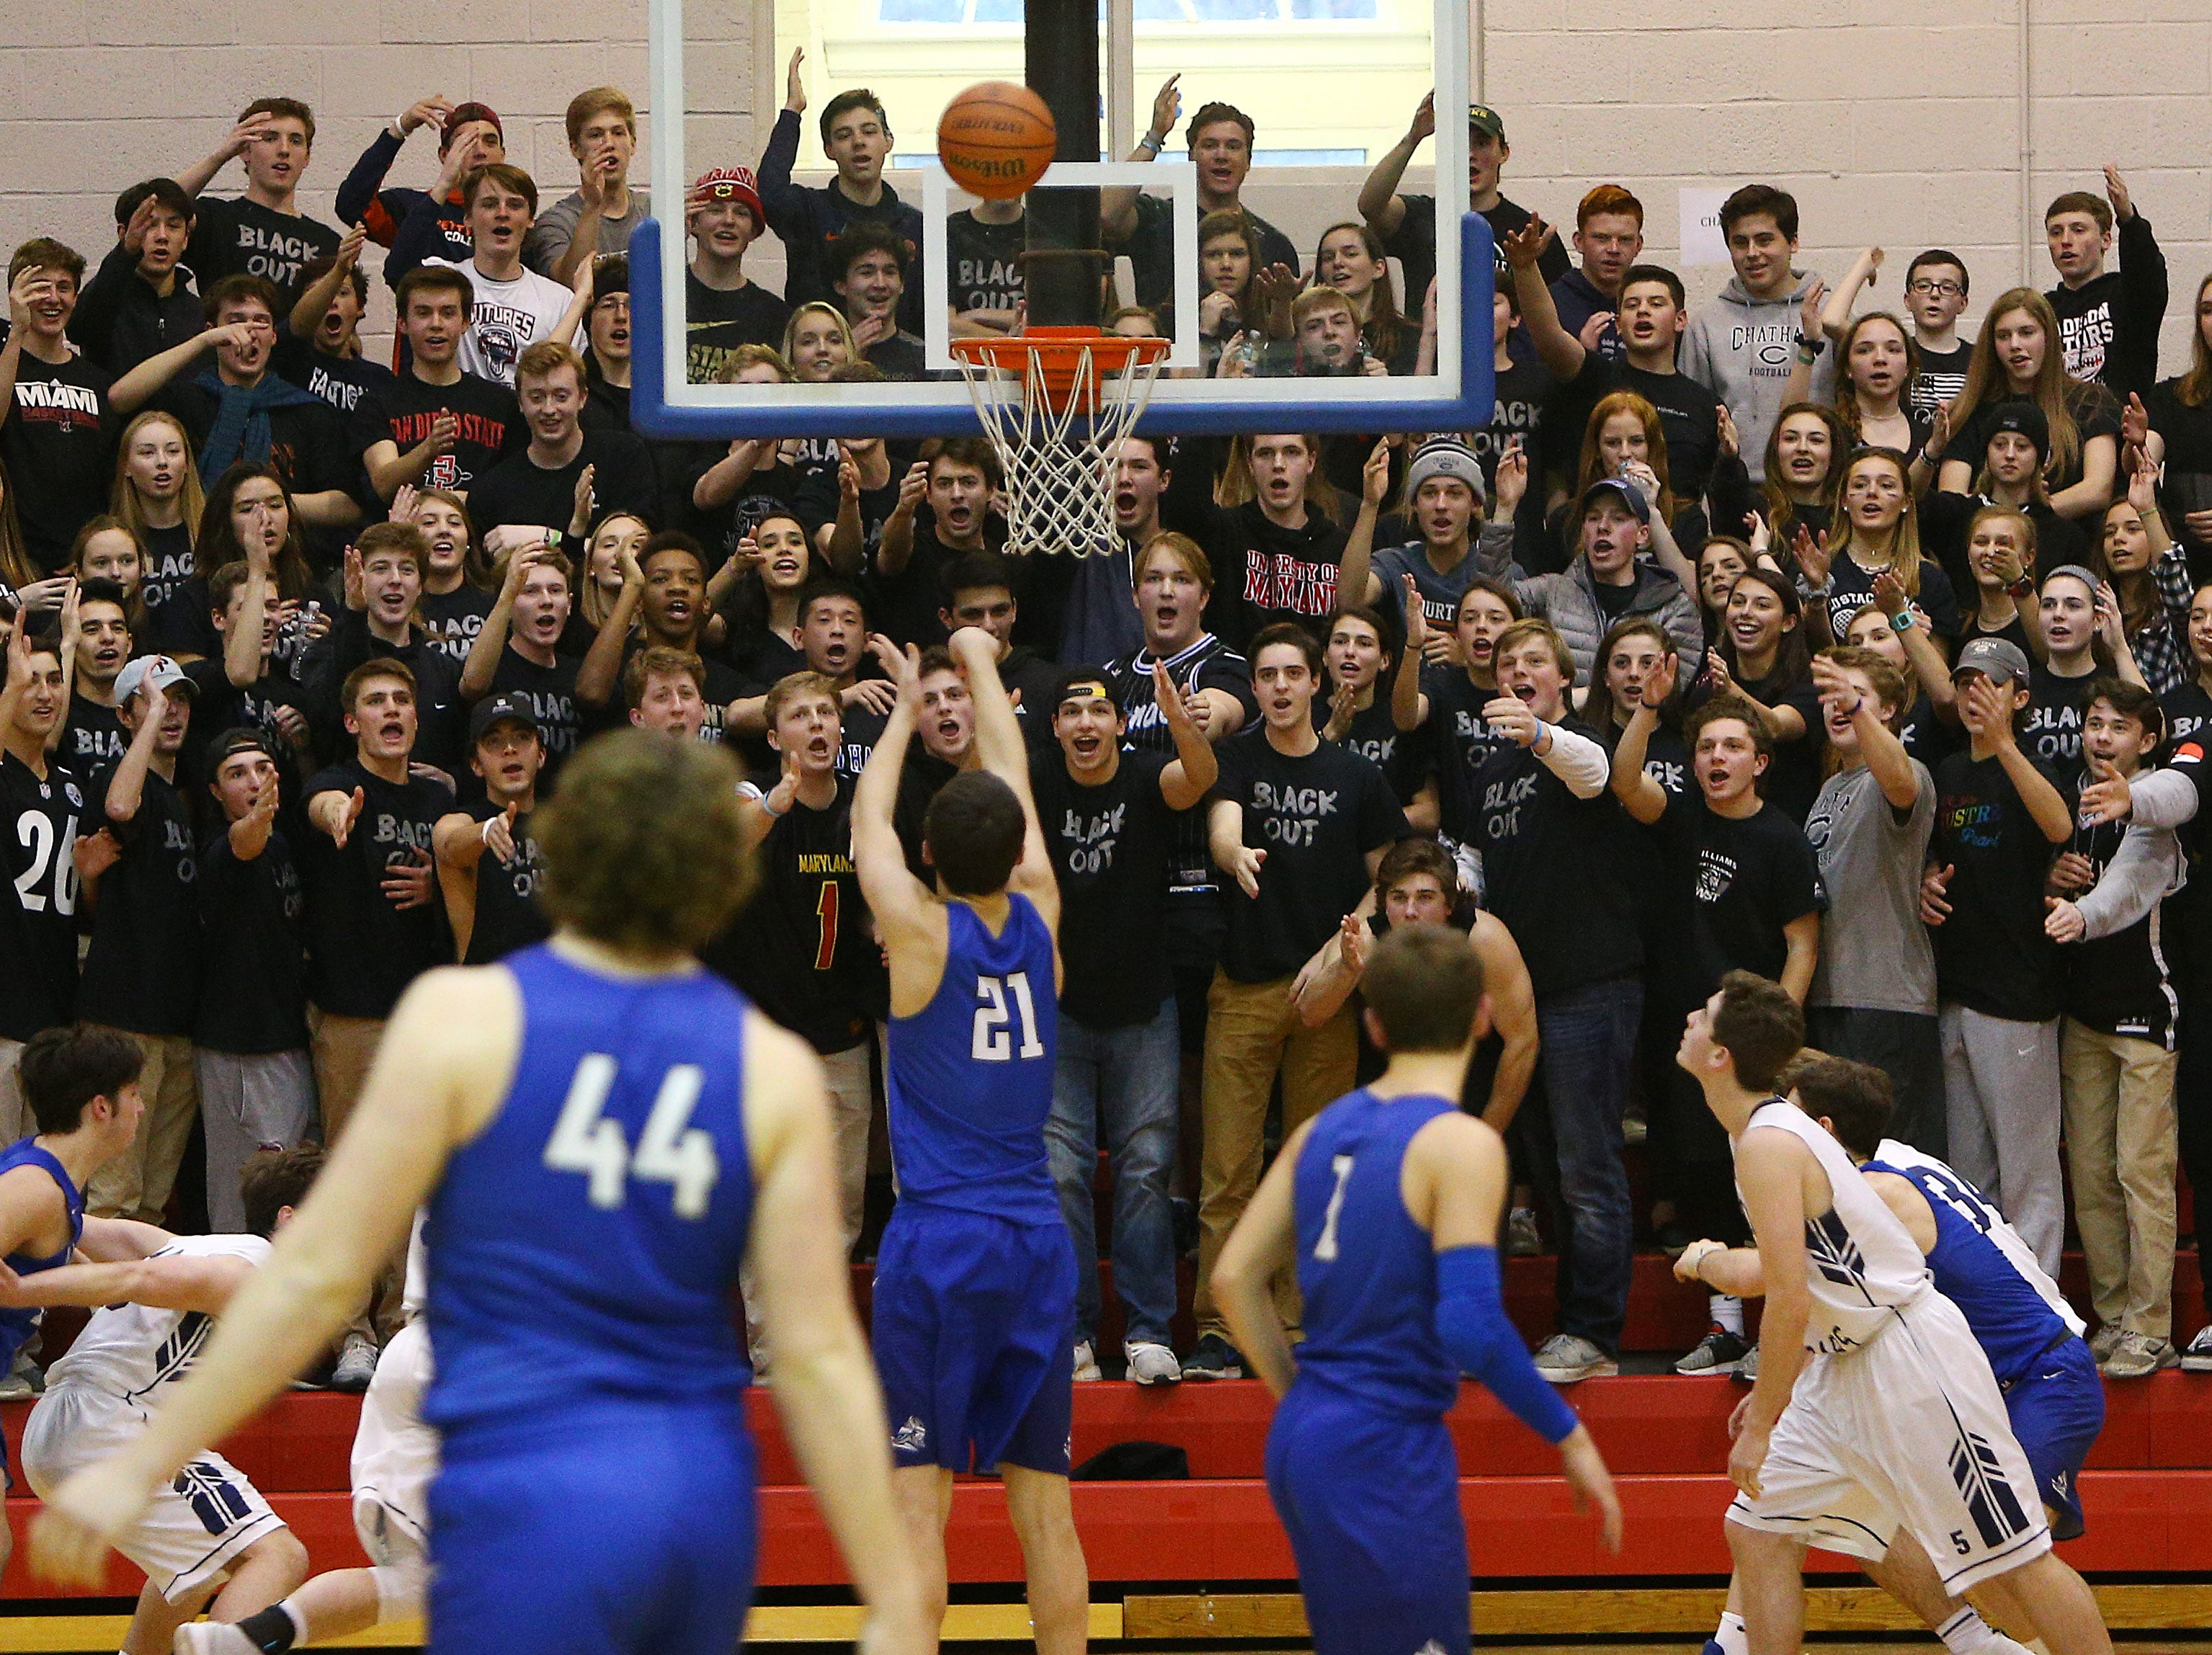 Chatham Fans try to distract free-throw shooting Jake Runyon of Demarest during the Group III boys basketball semifinal at East Orange Campus High School. The Cougars won 45-43 to move into the finals. March 9, 2018.  East Orange, NJ.